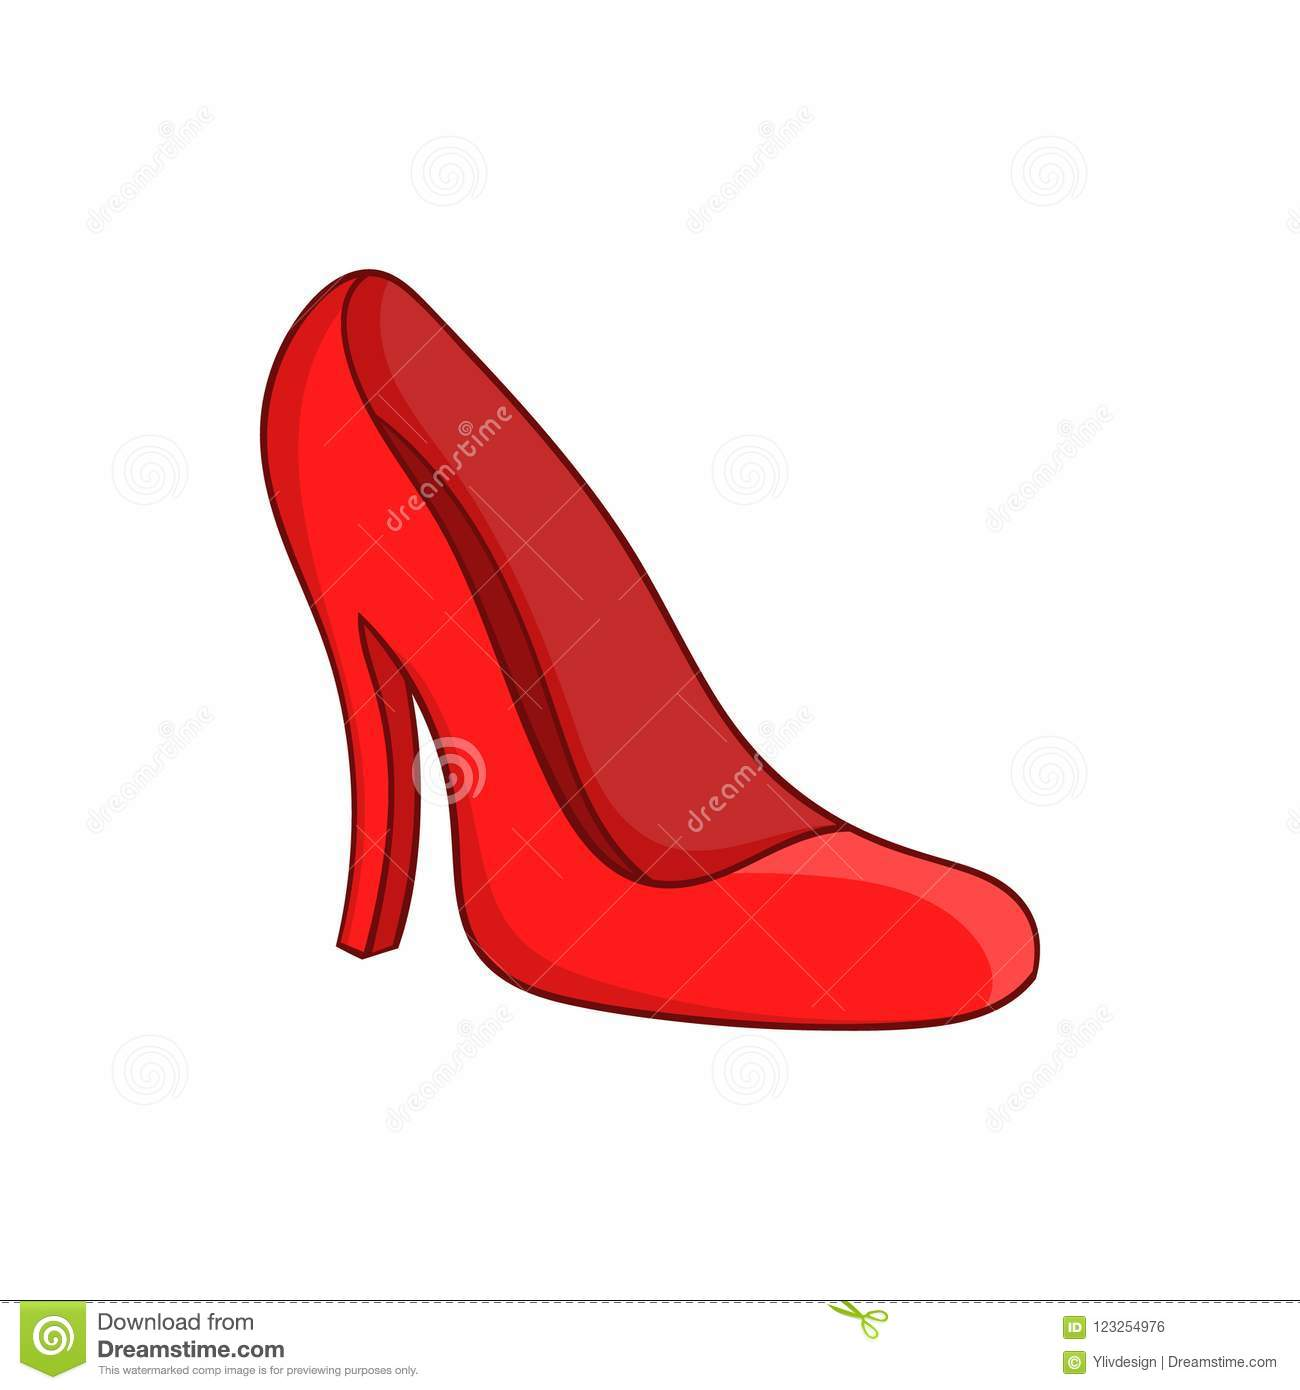 Red Women Shoes Icon Cartoon Style Stock Illustration